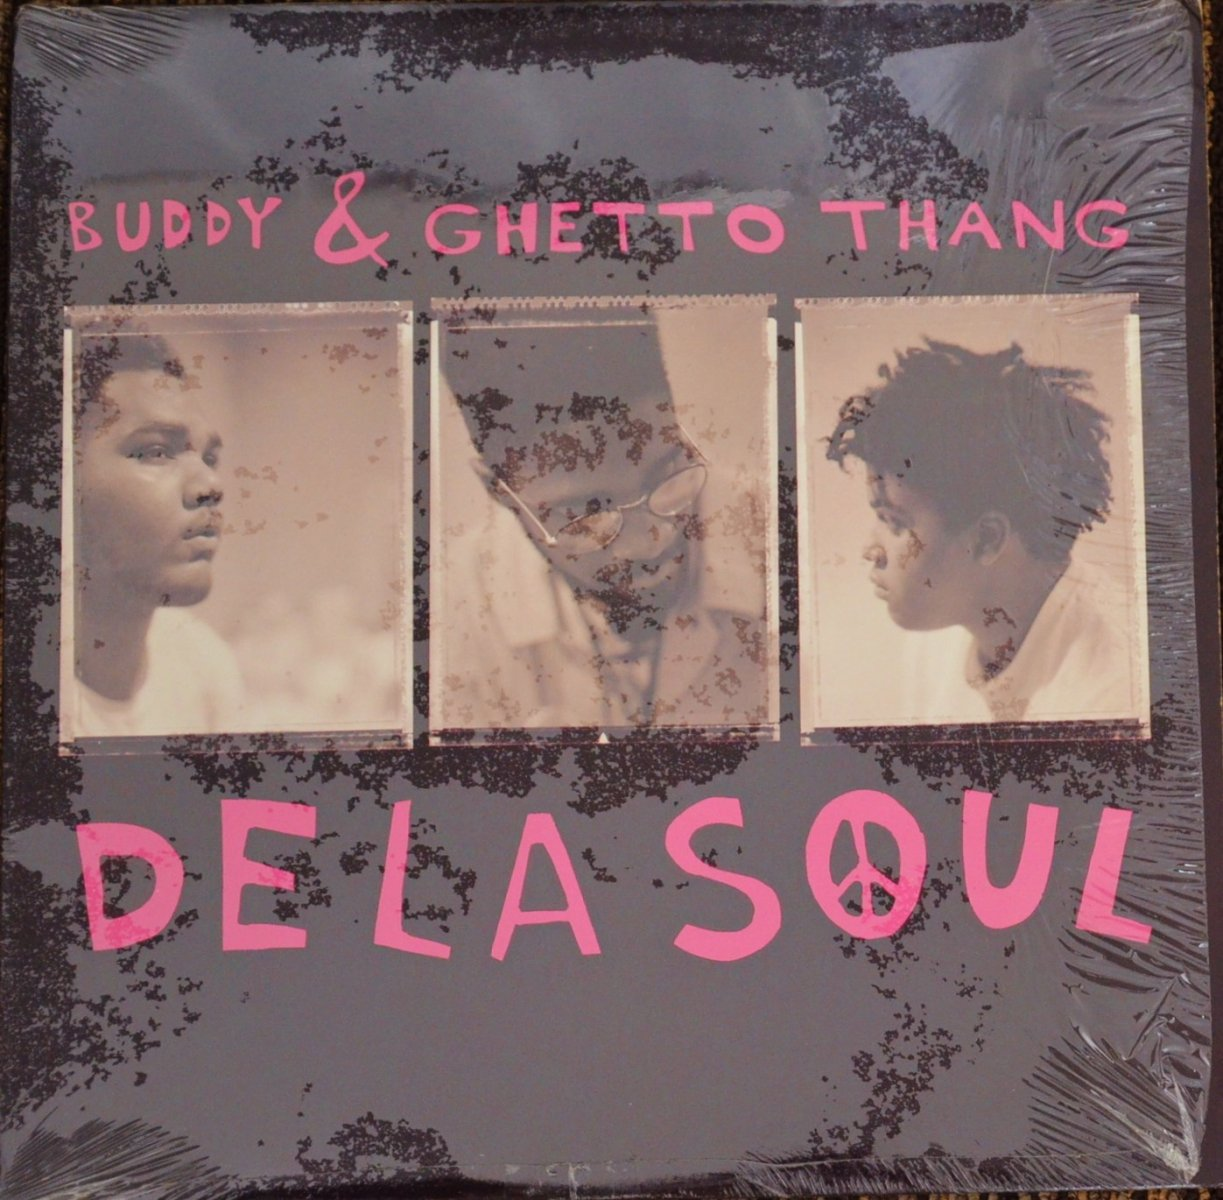 DE LA SOUL ‎/ BUDDY & GHETTO THANG (12